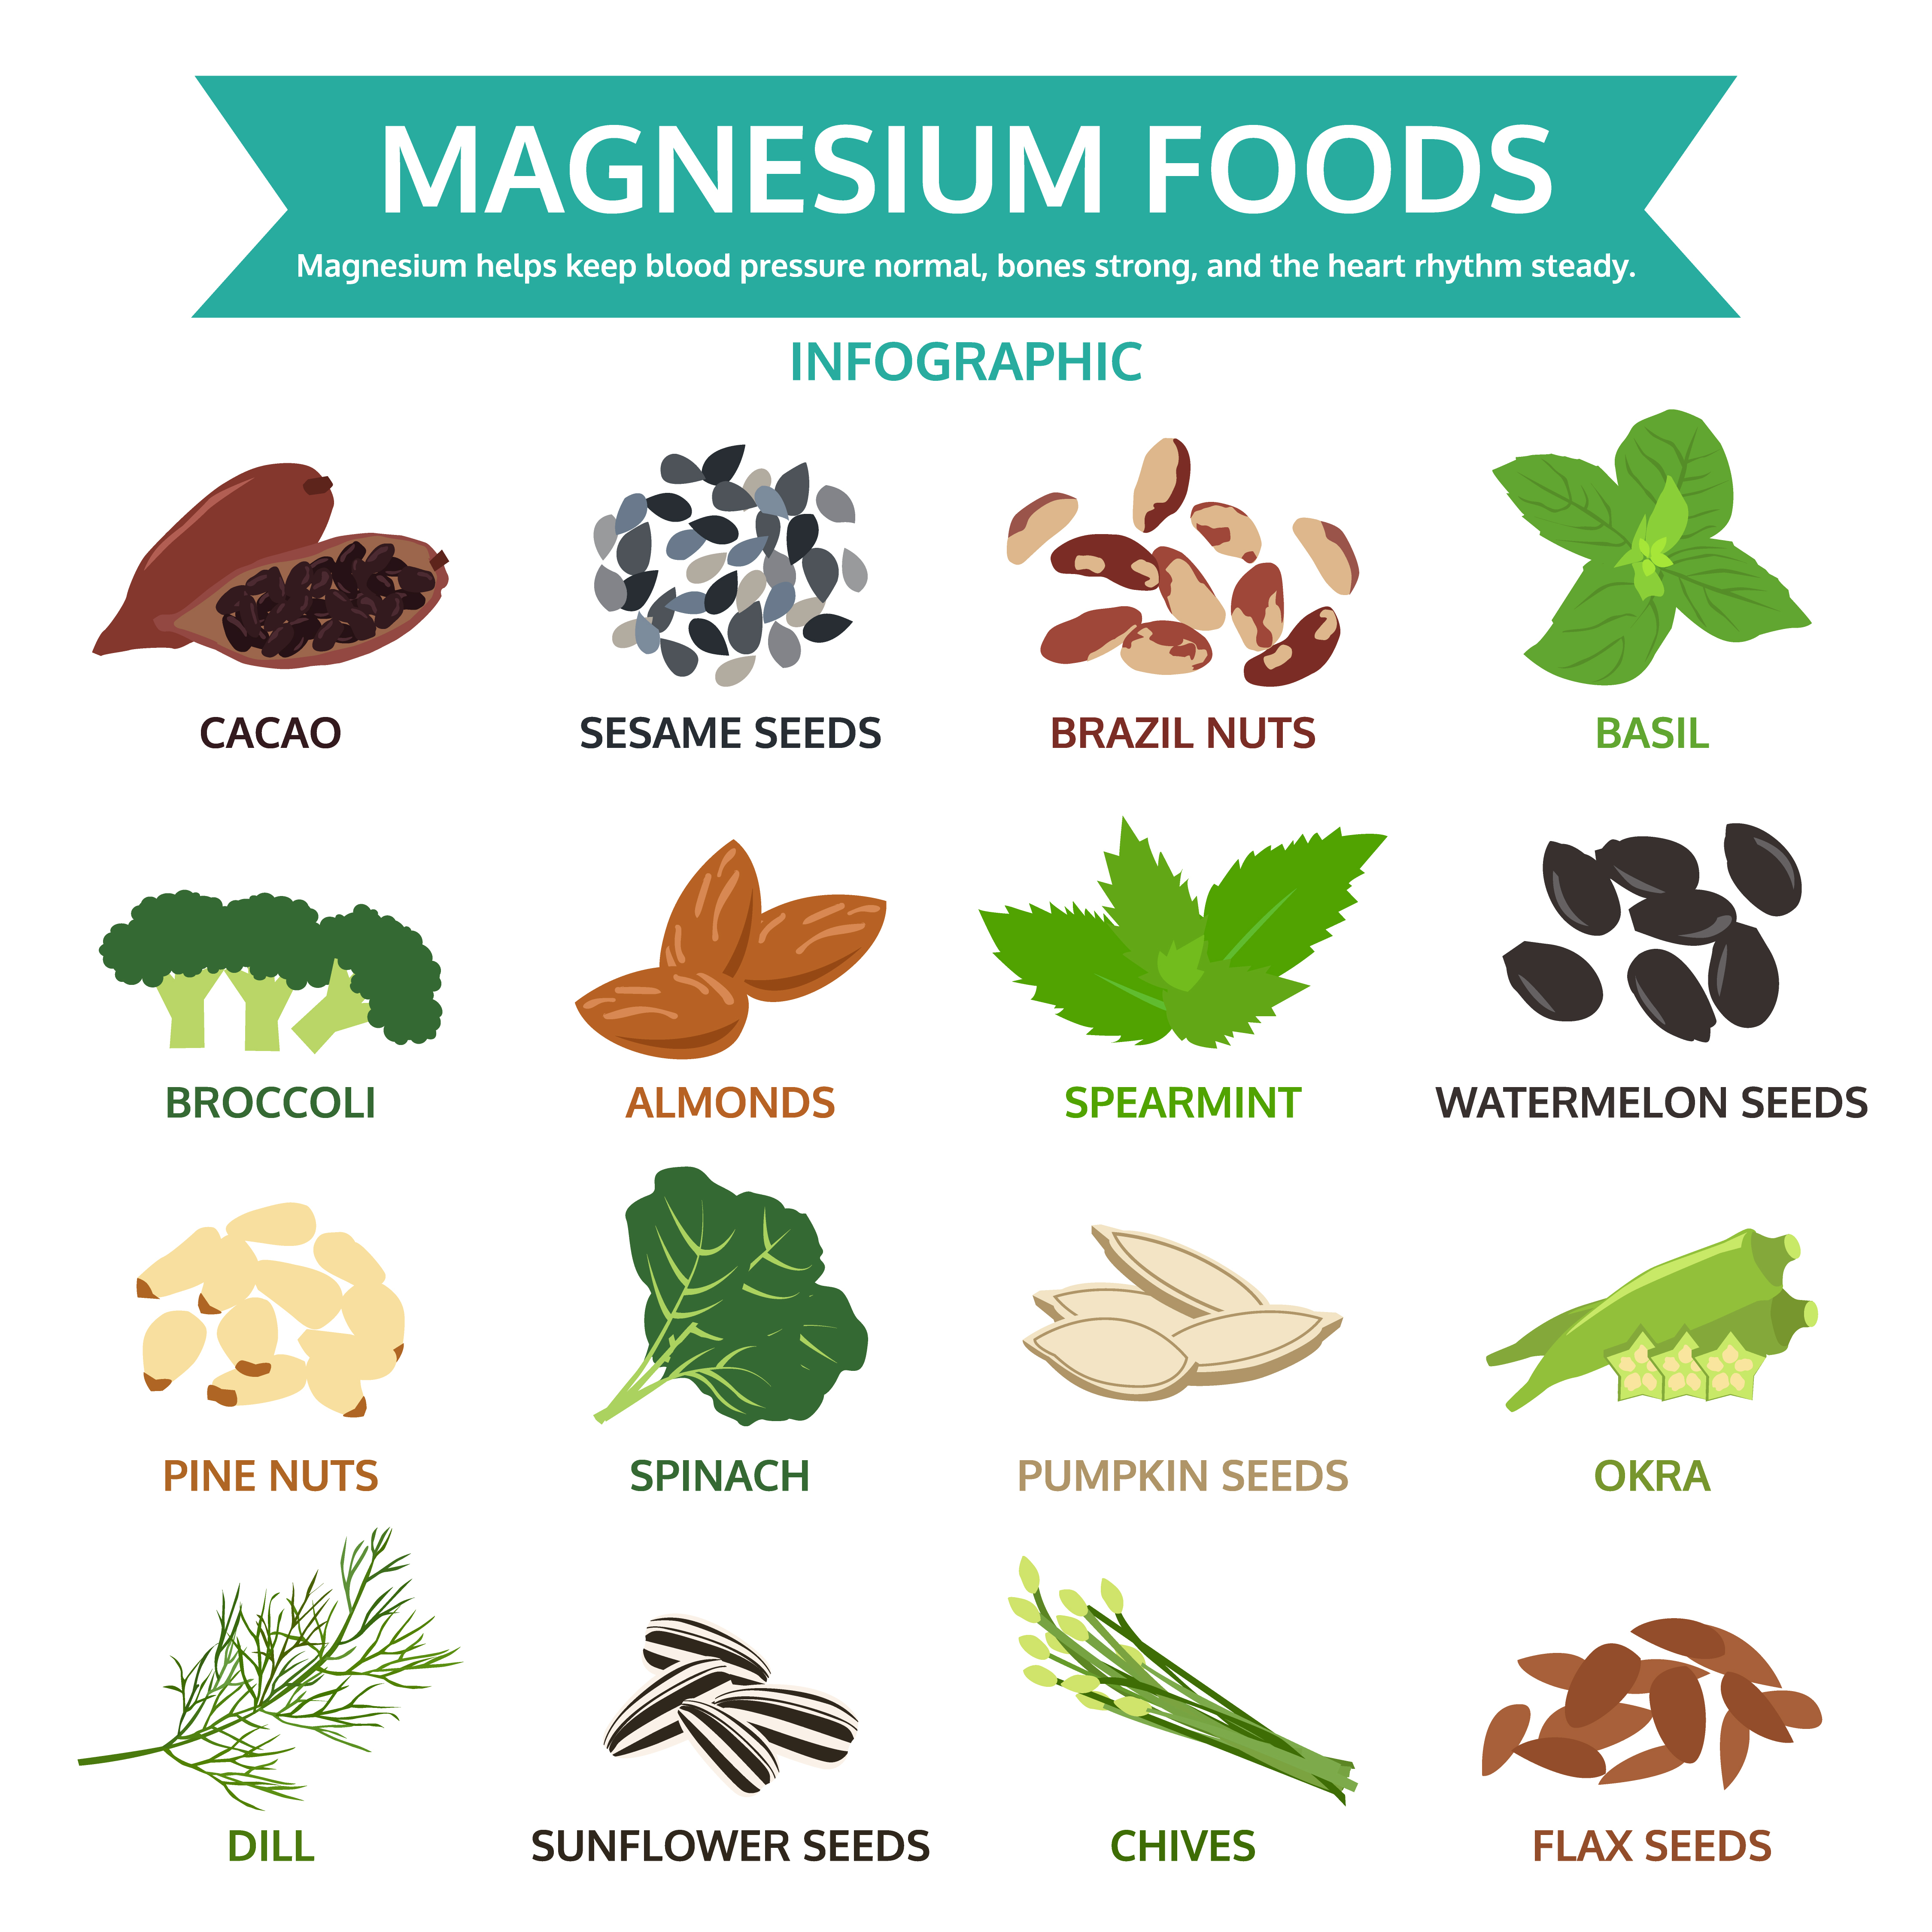 Best natural sources of magnesium